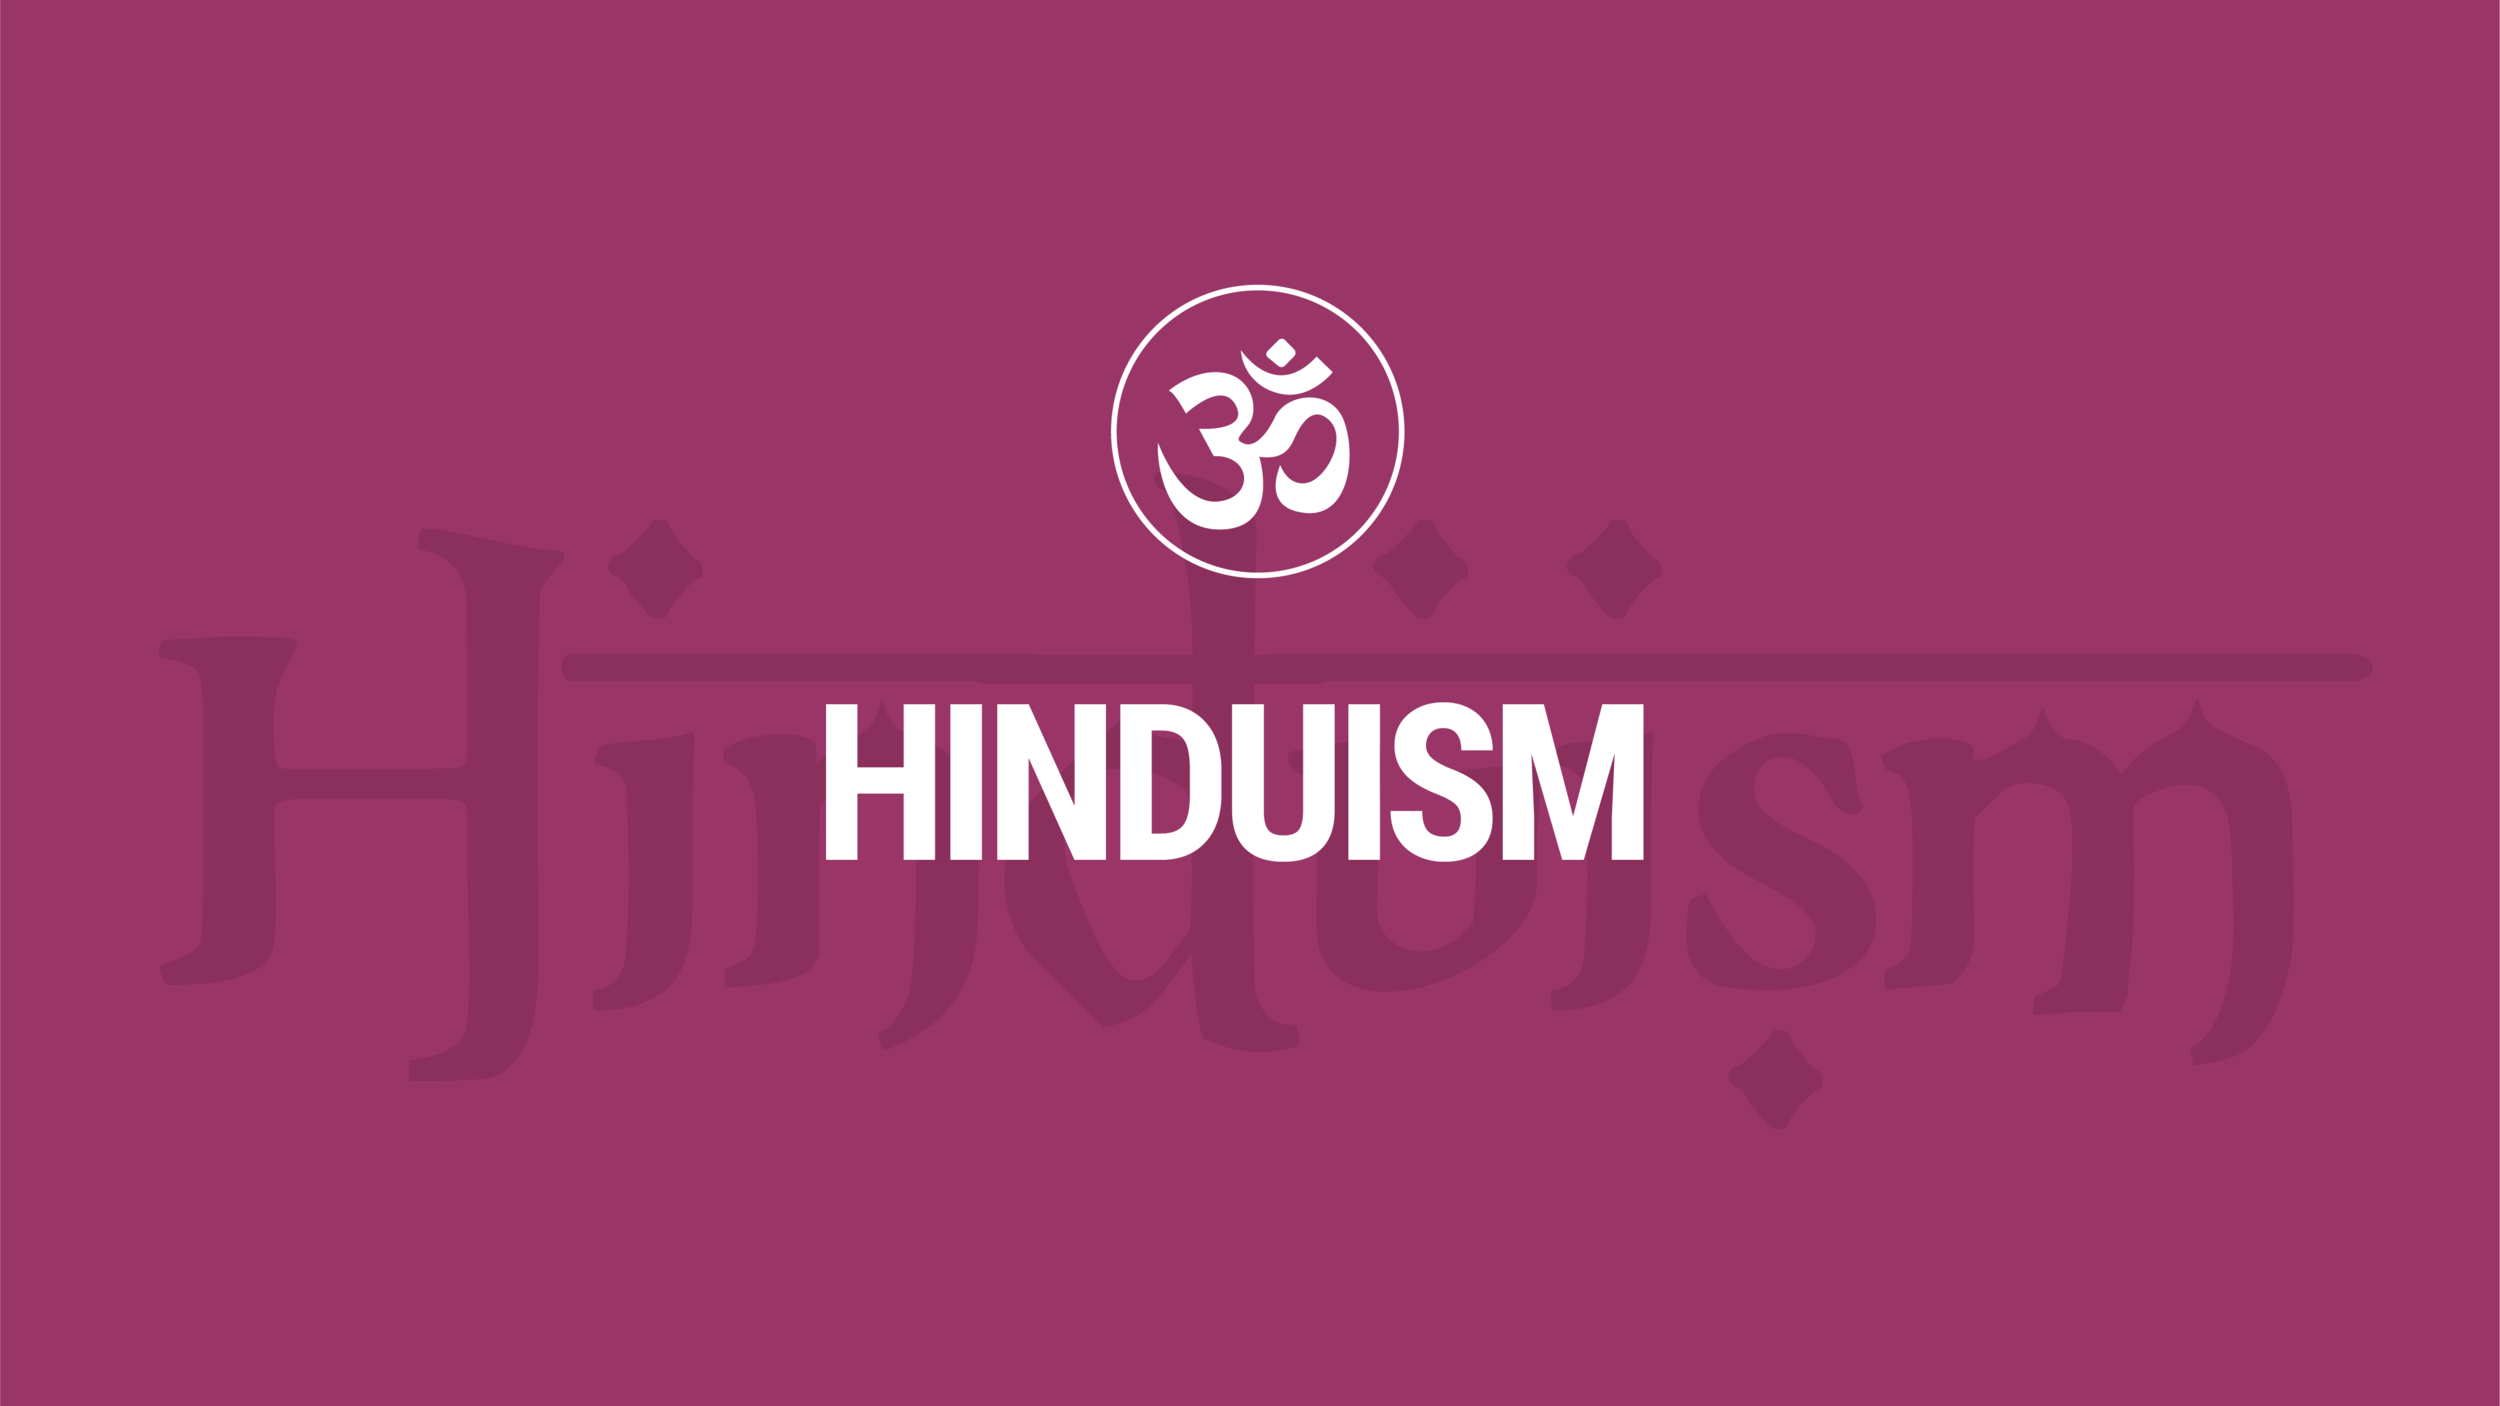 faith_religion_hinduism.png